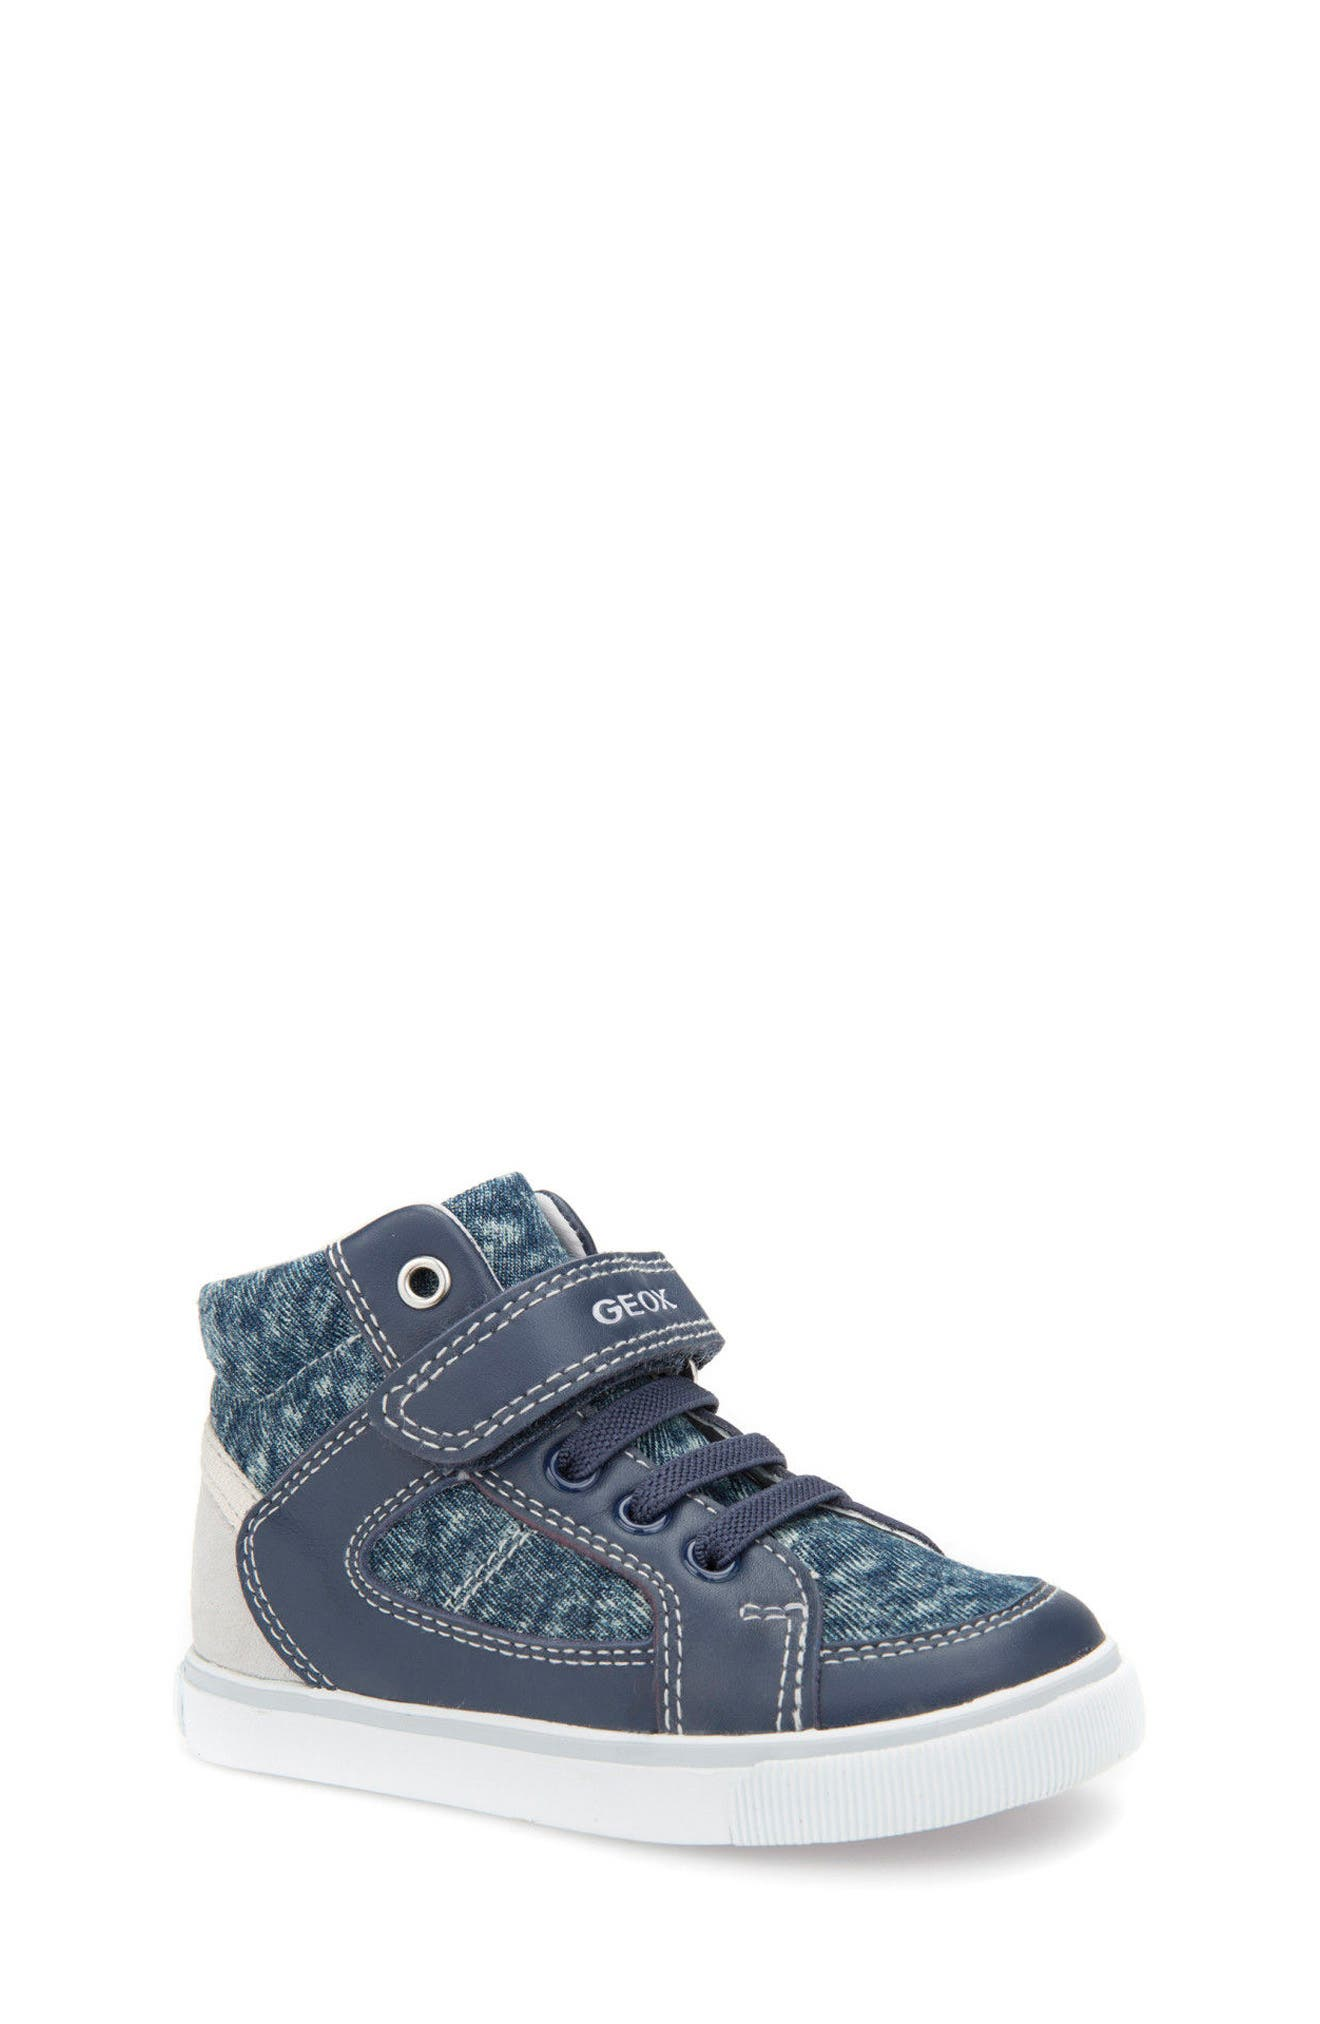 Geox Kiwi Sneaker (Walker & Toddler)